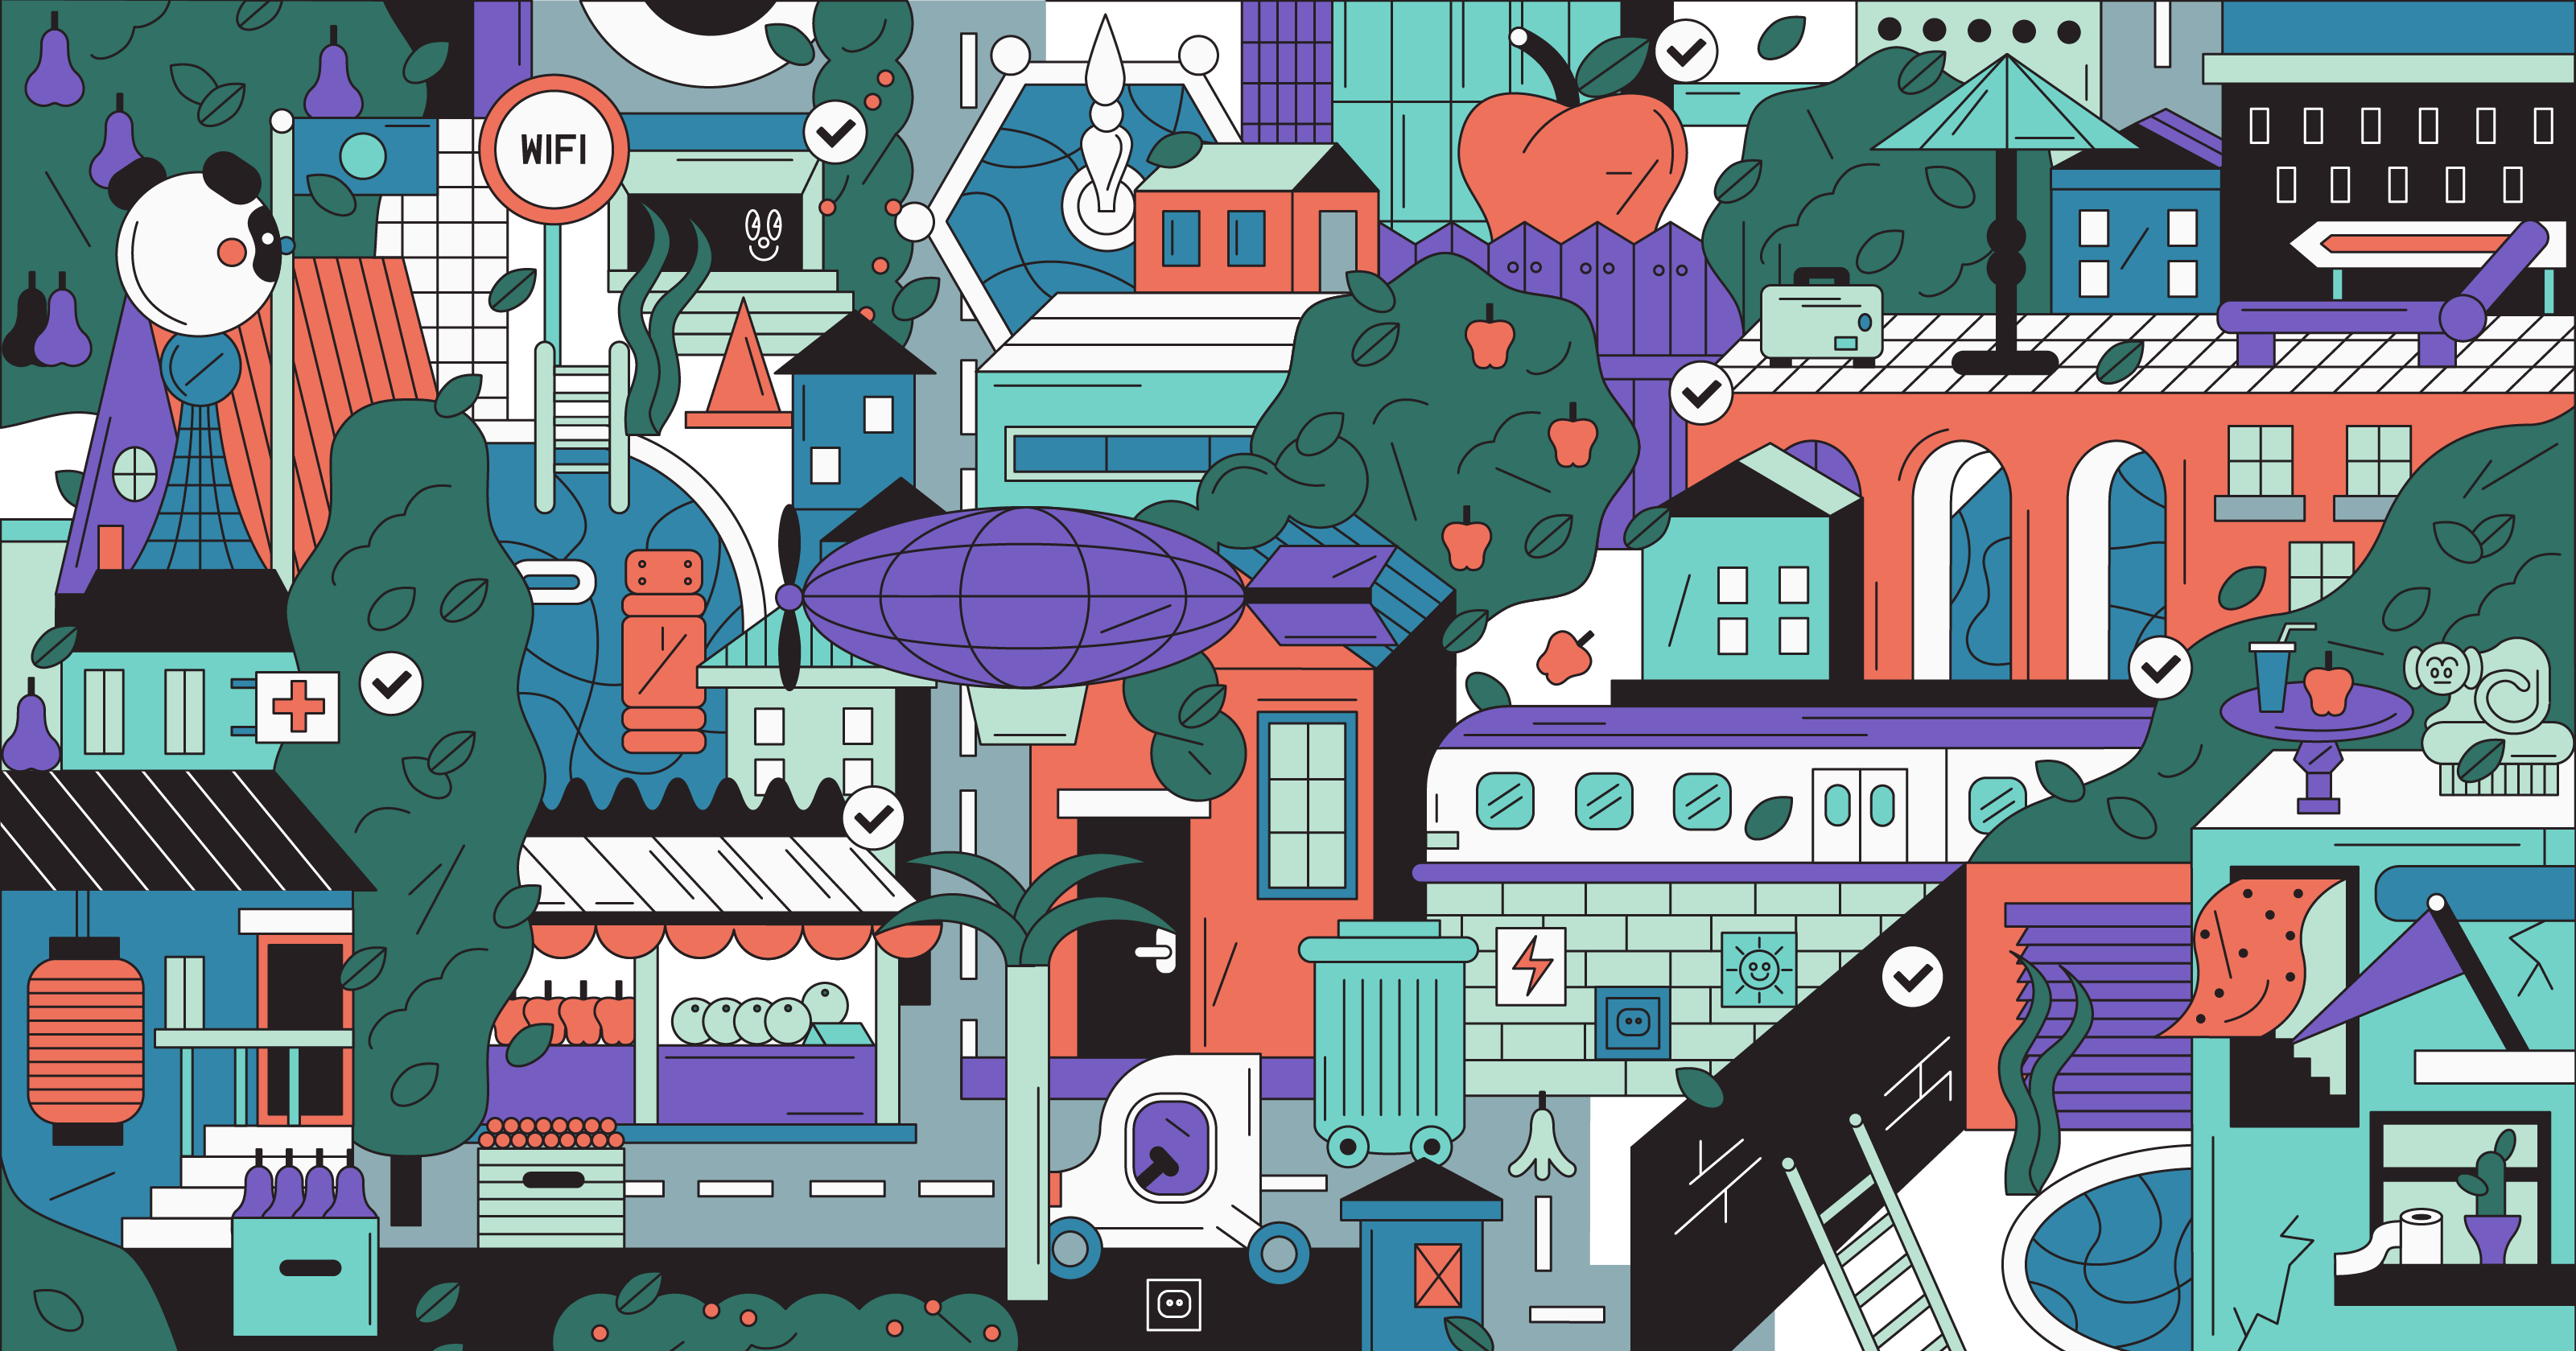 The Future of Cites: How mega-cities and technology will reshape the urban landscape